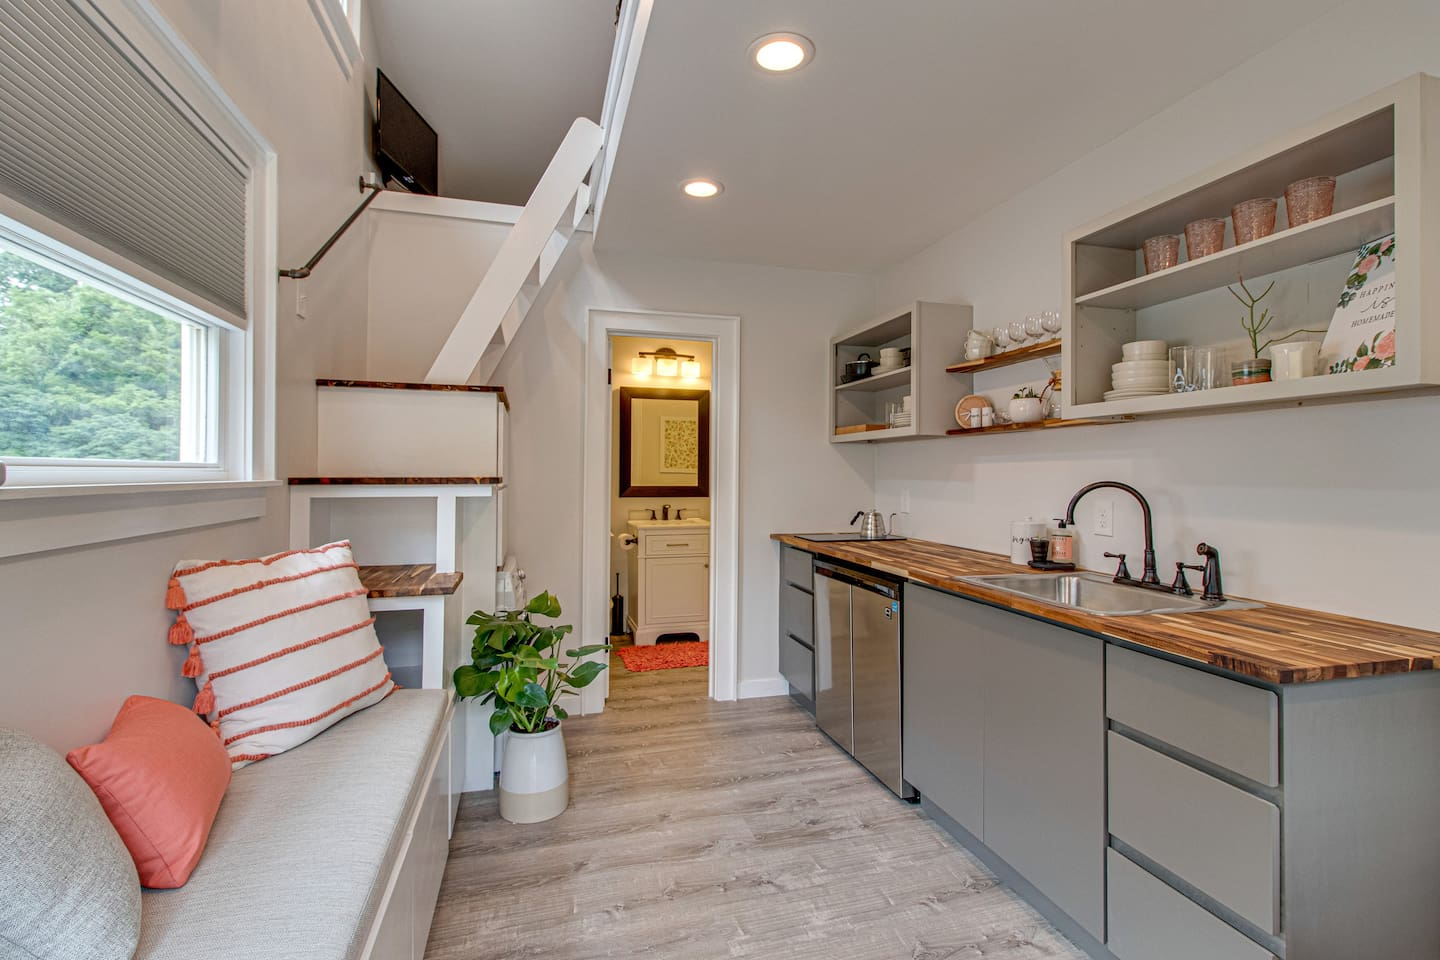 Our 165 square foot tiny house is small but amazing accommodating. We have everything you need to stay cozy designed into the space including fridge/freezer, washer/dryer, dishes, stovetop, toaster oven, tv, toiletries and more.